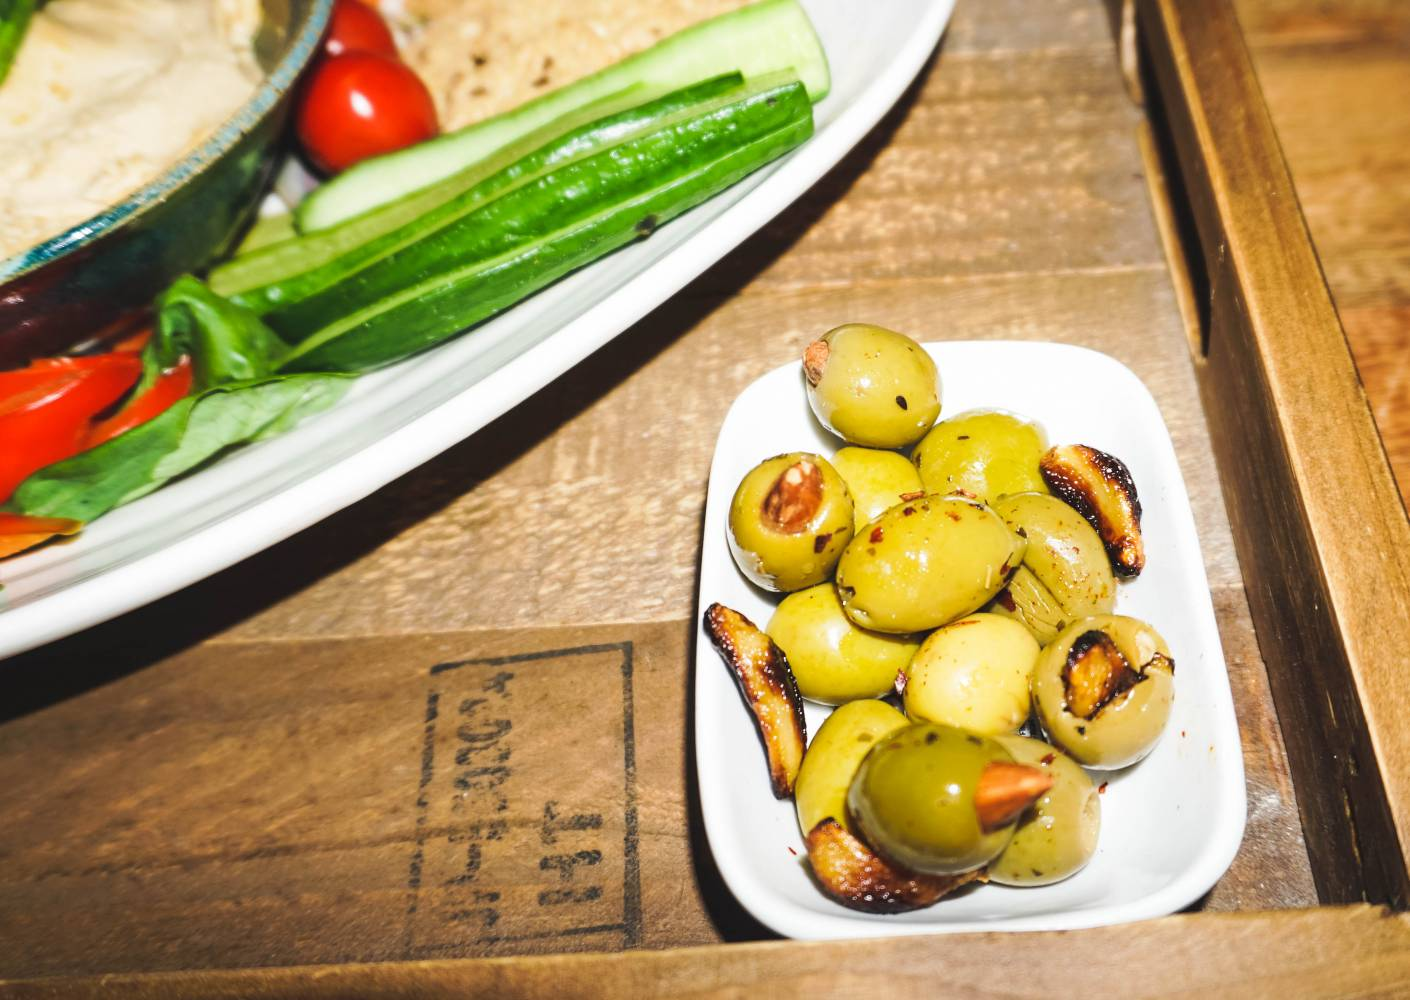 The Ultimate Vegan Party Platter Featuring Spanish Olives